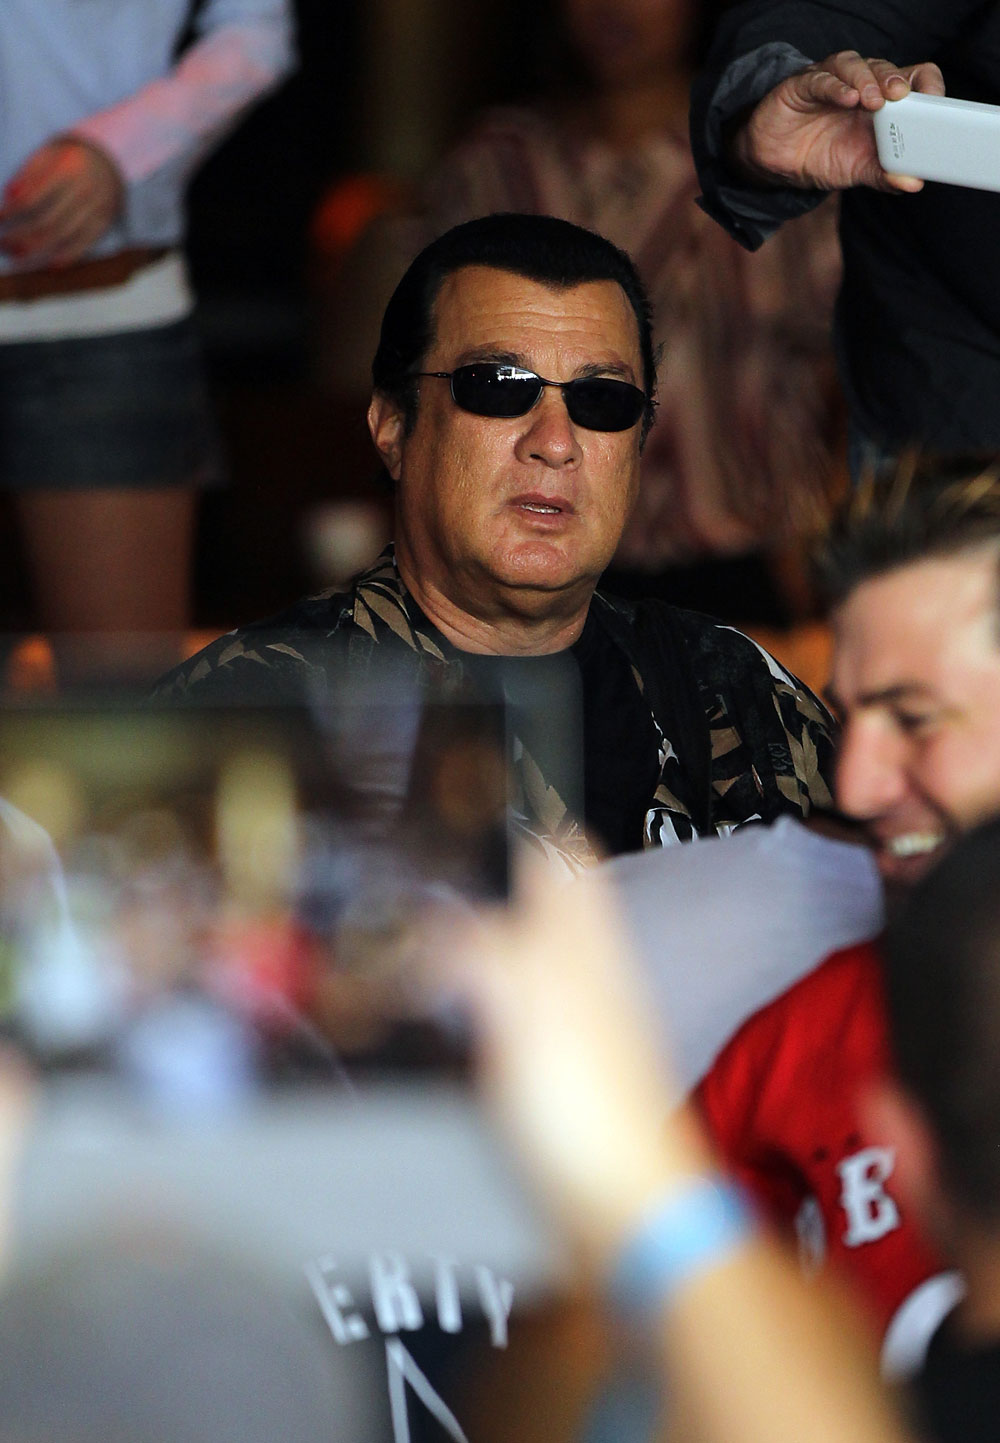 LAS VEGAS, NV - JULY 5:   Actor Steven Seagal looks on as Anderson Silva works out during the UFC 148 Open Workouts inside XS nightclub at the Encore on July 5, 2012 in Las Vegas, Nevada.  (Photo by Josh Hedges/Zuffa LLC/Zuffa LLC via Getty Images)